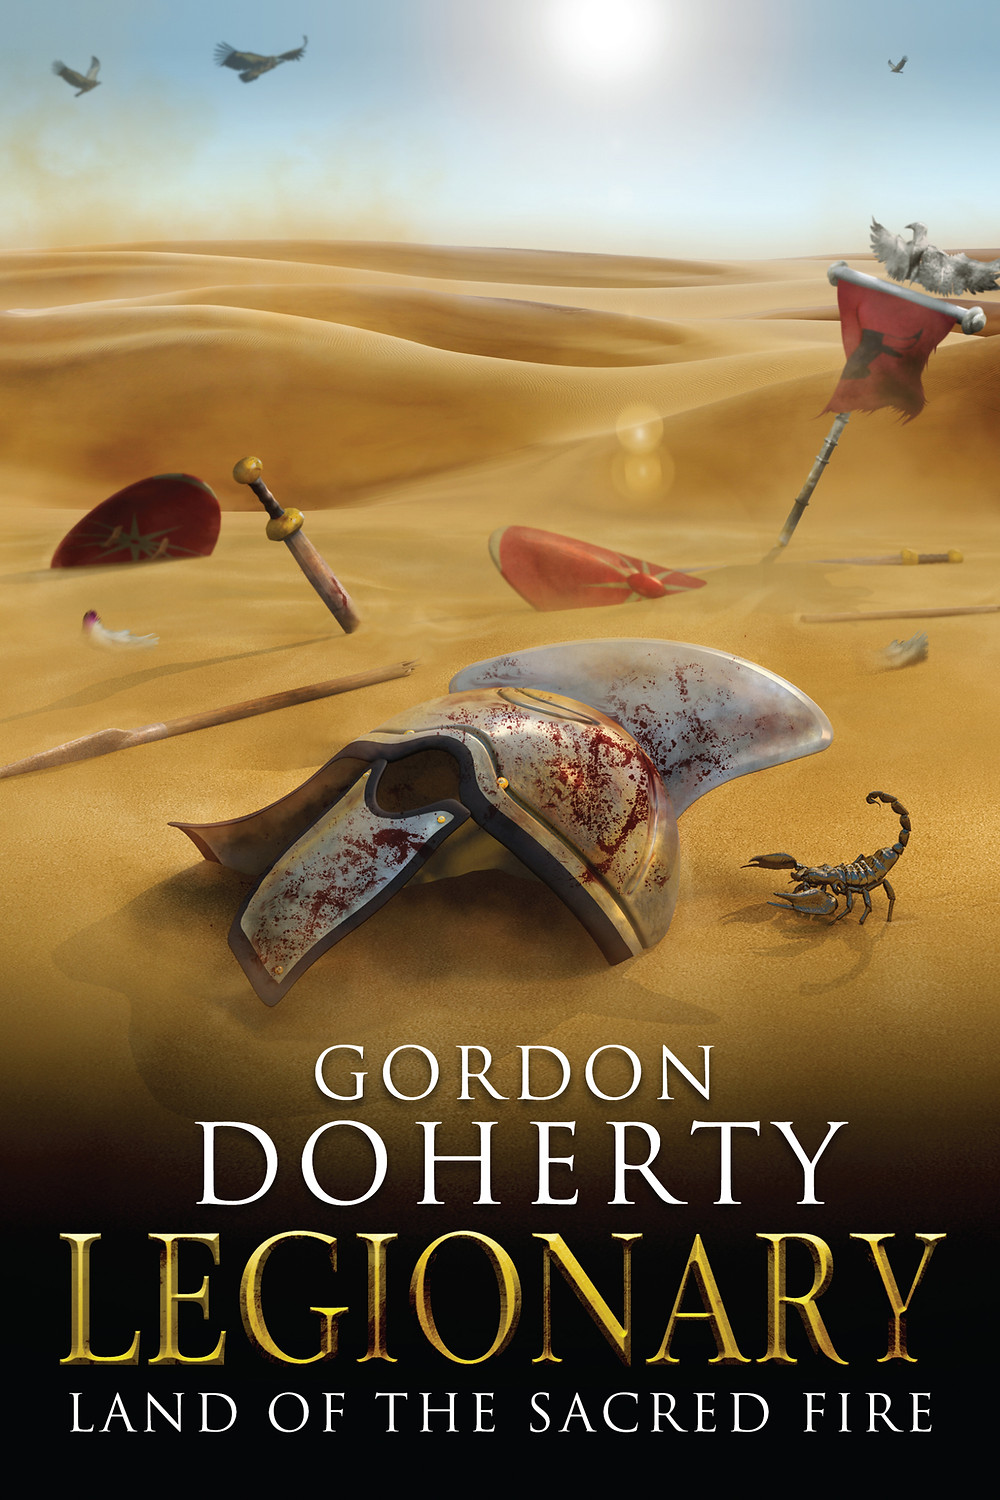 A bloodied legionary helmet lies in the desert sands as a scorpion scuttles into view